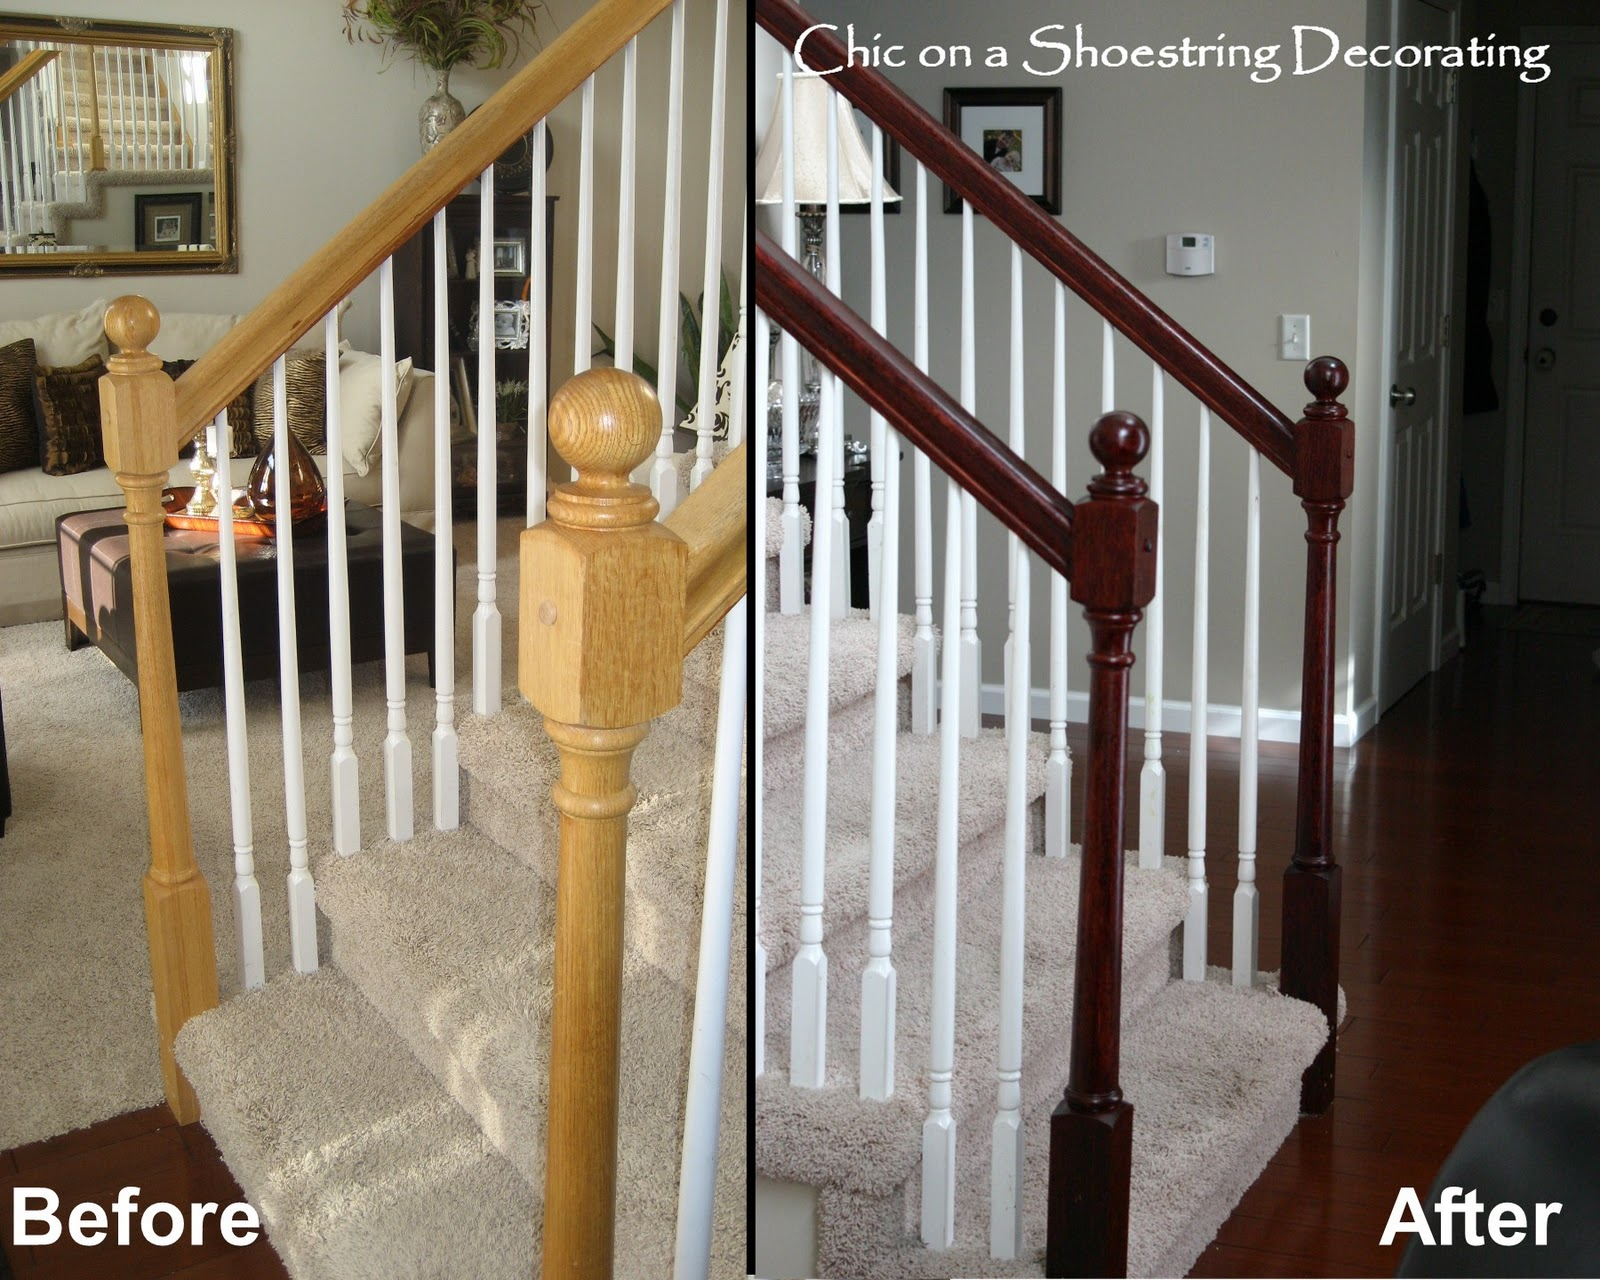 on a Shoestring Decorating: How to Stain Stair Railings ...